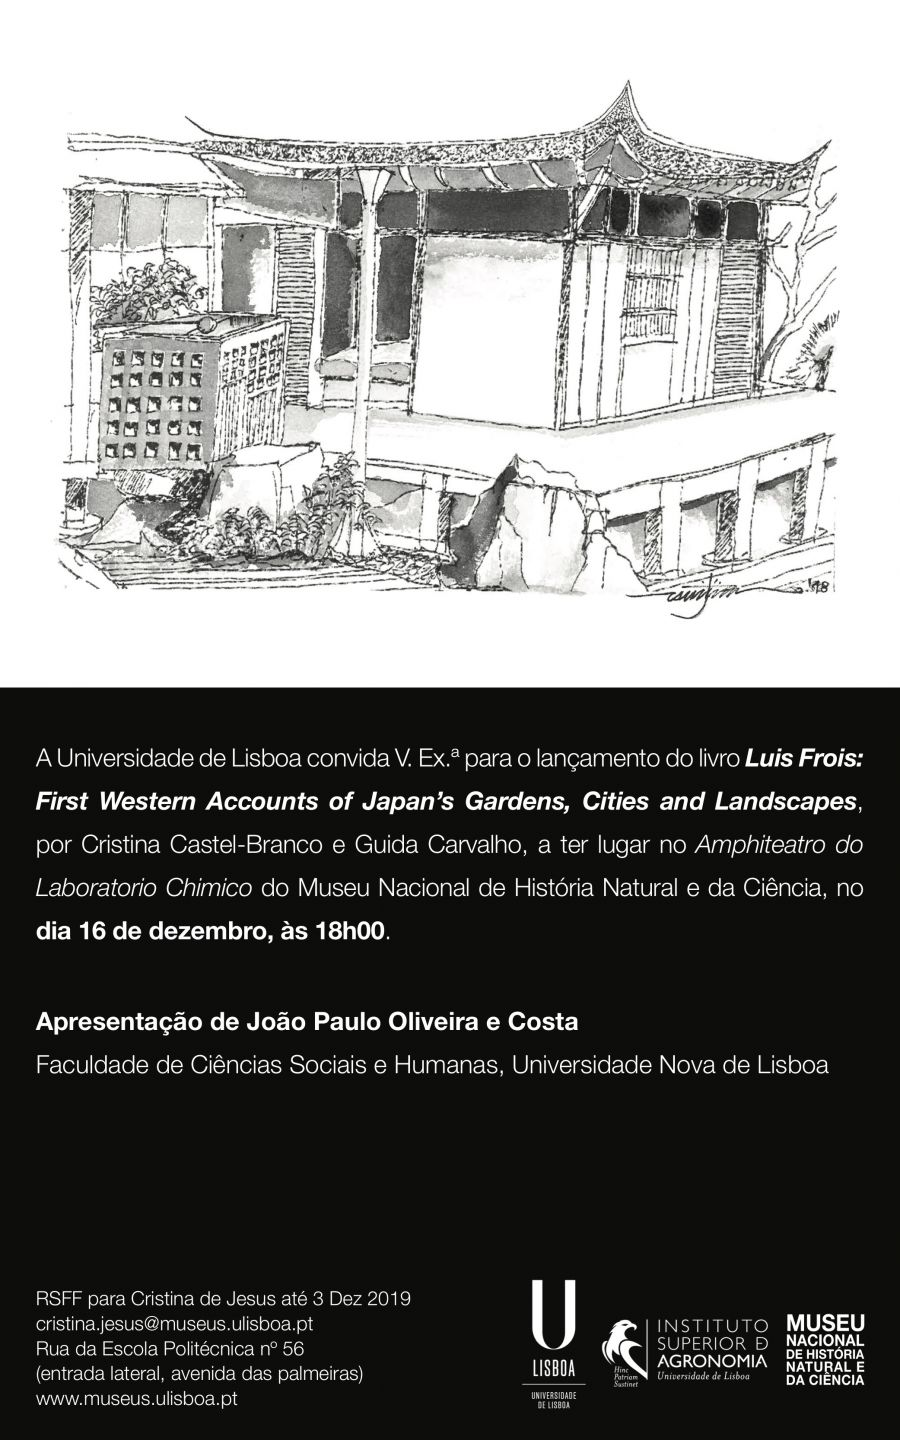 Lançamento do livro 'Luis Frois: First Western Accounts os Japan's Gardens, Cities and Landscapes'